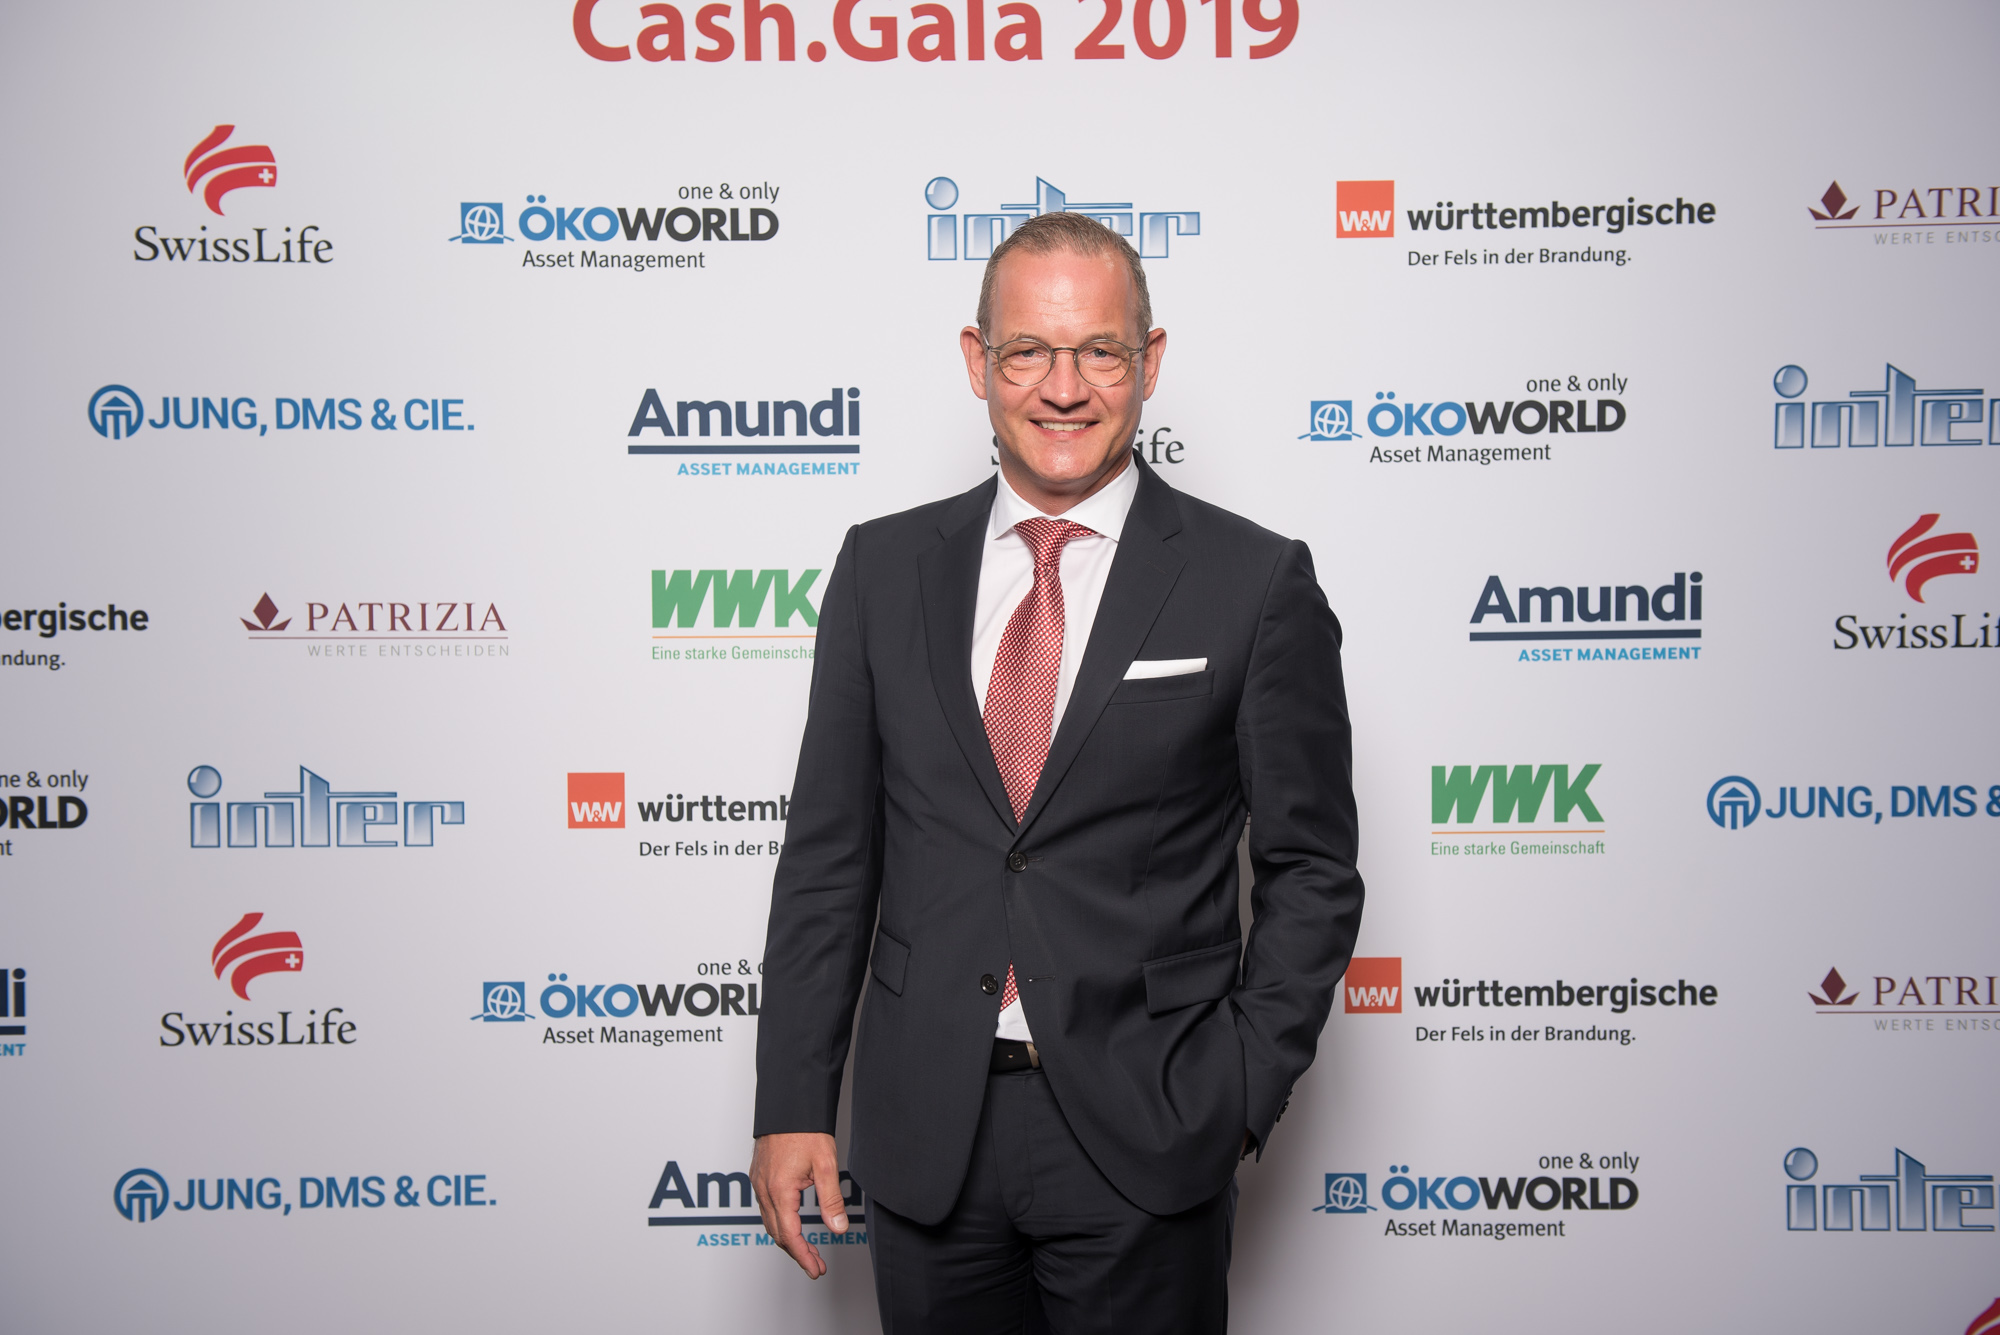 CashGala 2019 0056 AM DSC7107 in Cash.Gala 2019